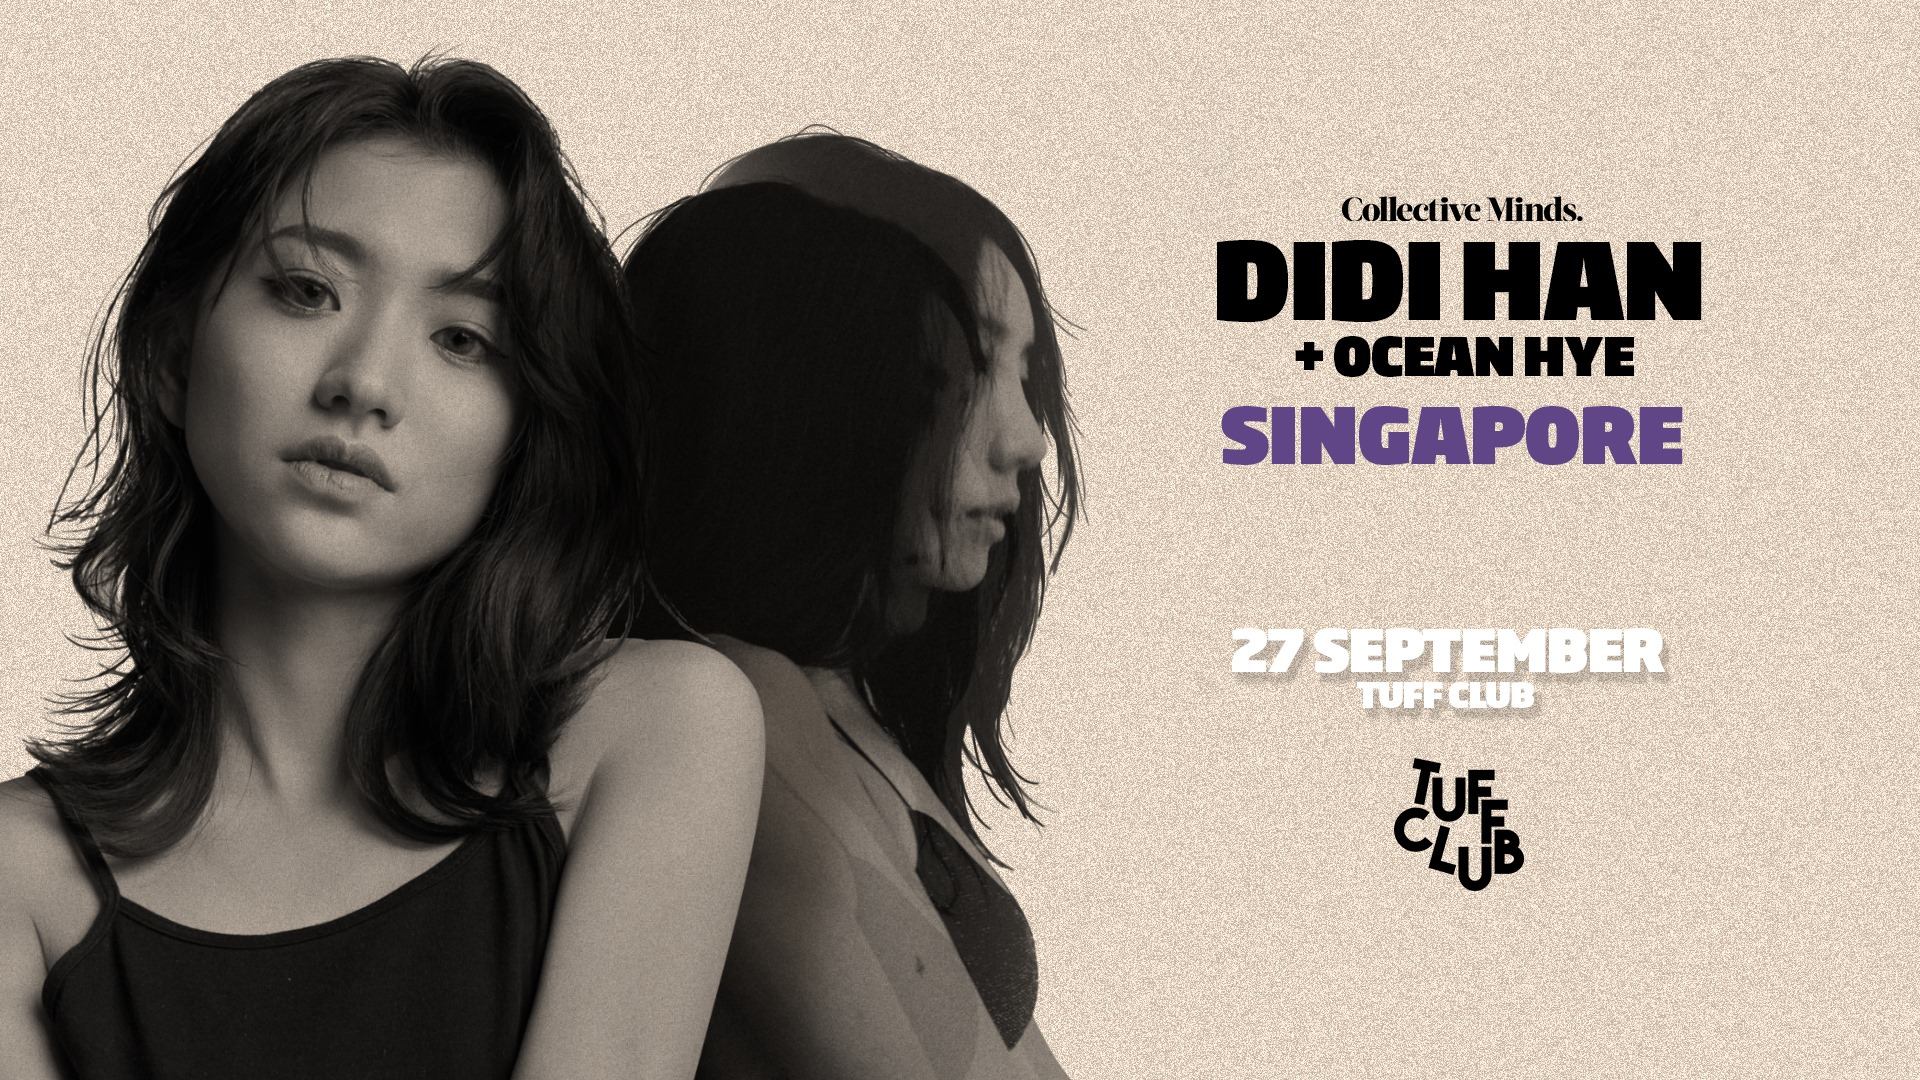 Collective Minds x Tuff Club present Didi Han + Ocean Hye